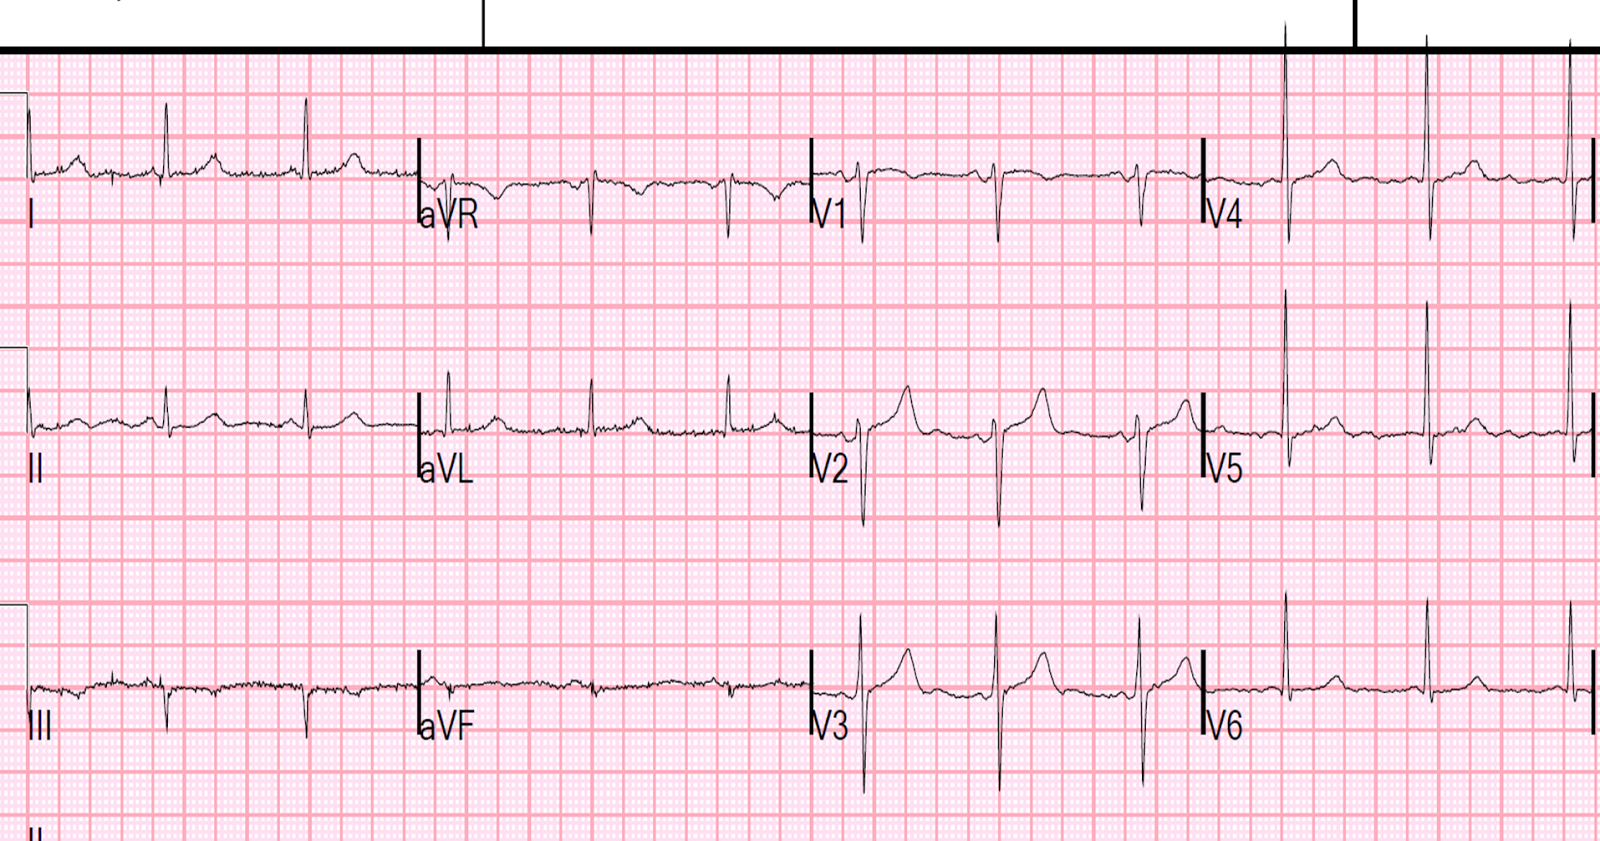 Dr. Smith's ECG Blog: A 50-something with severe chest pain and a normal ECG